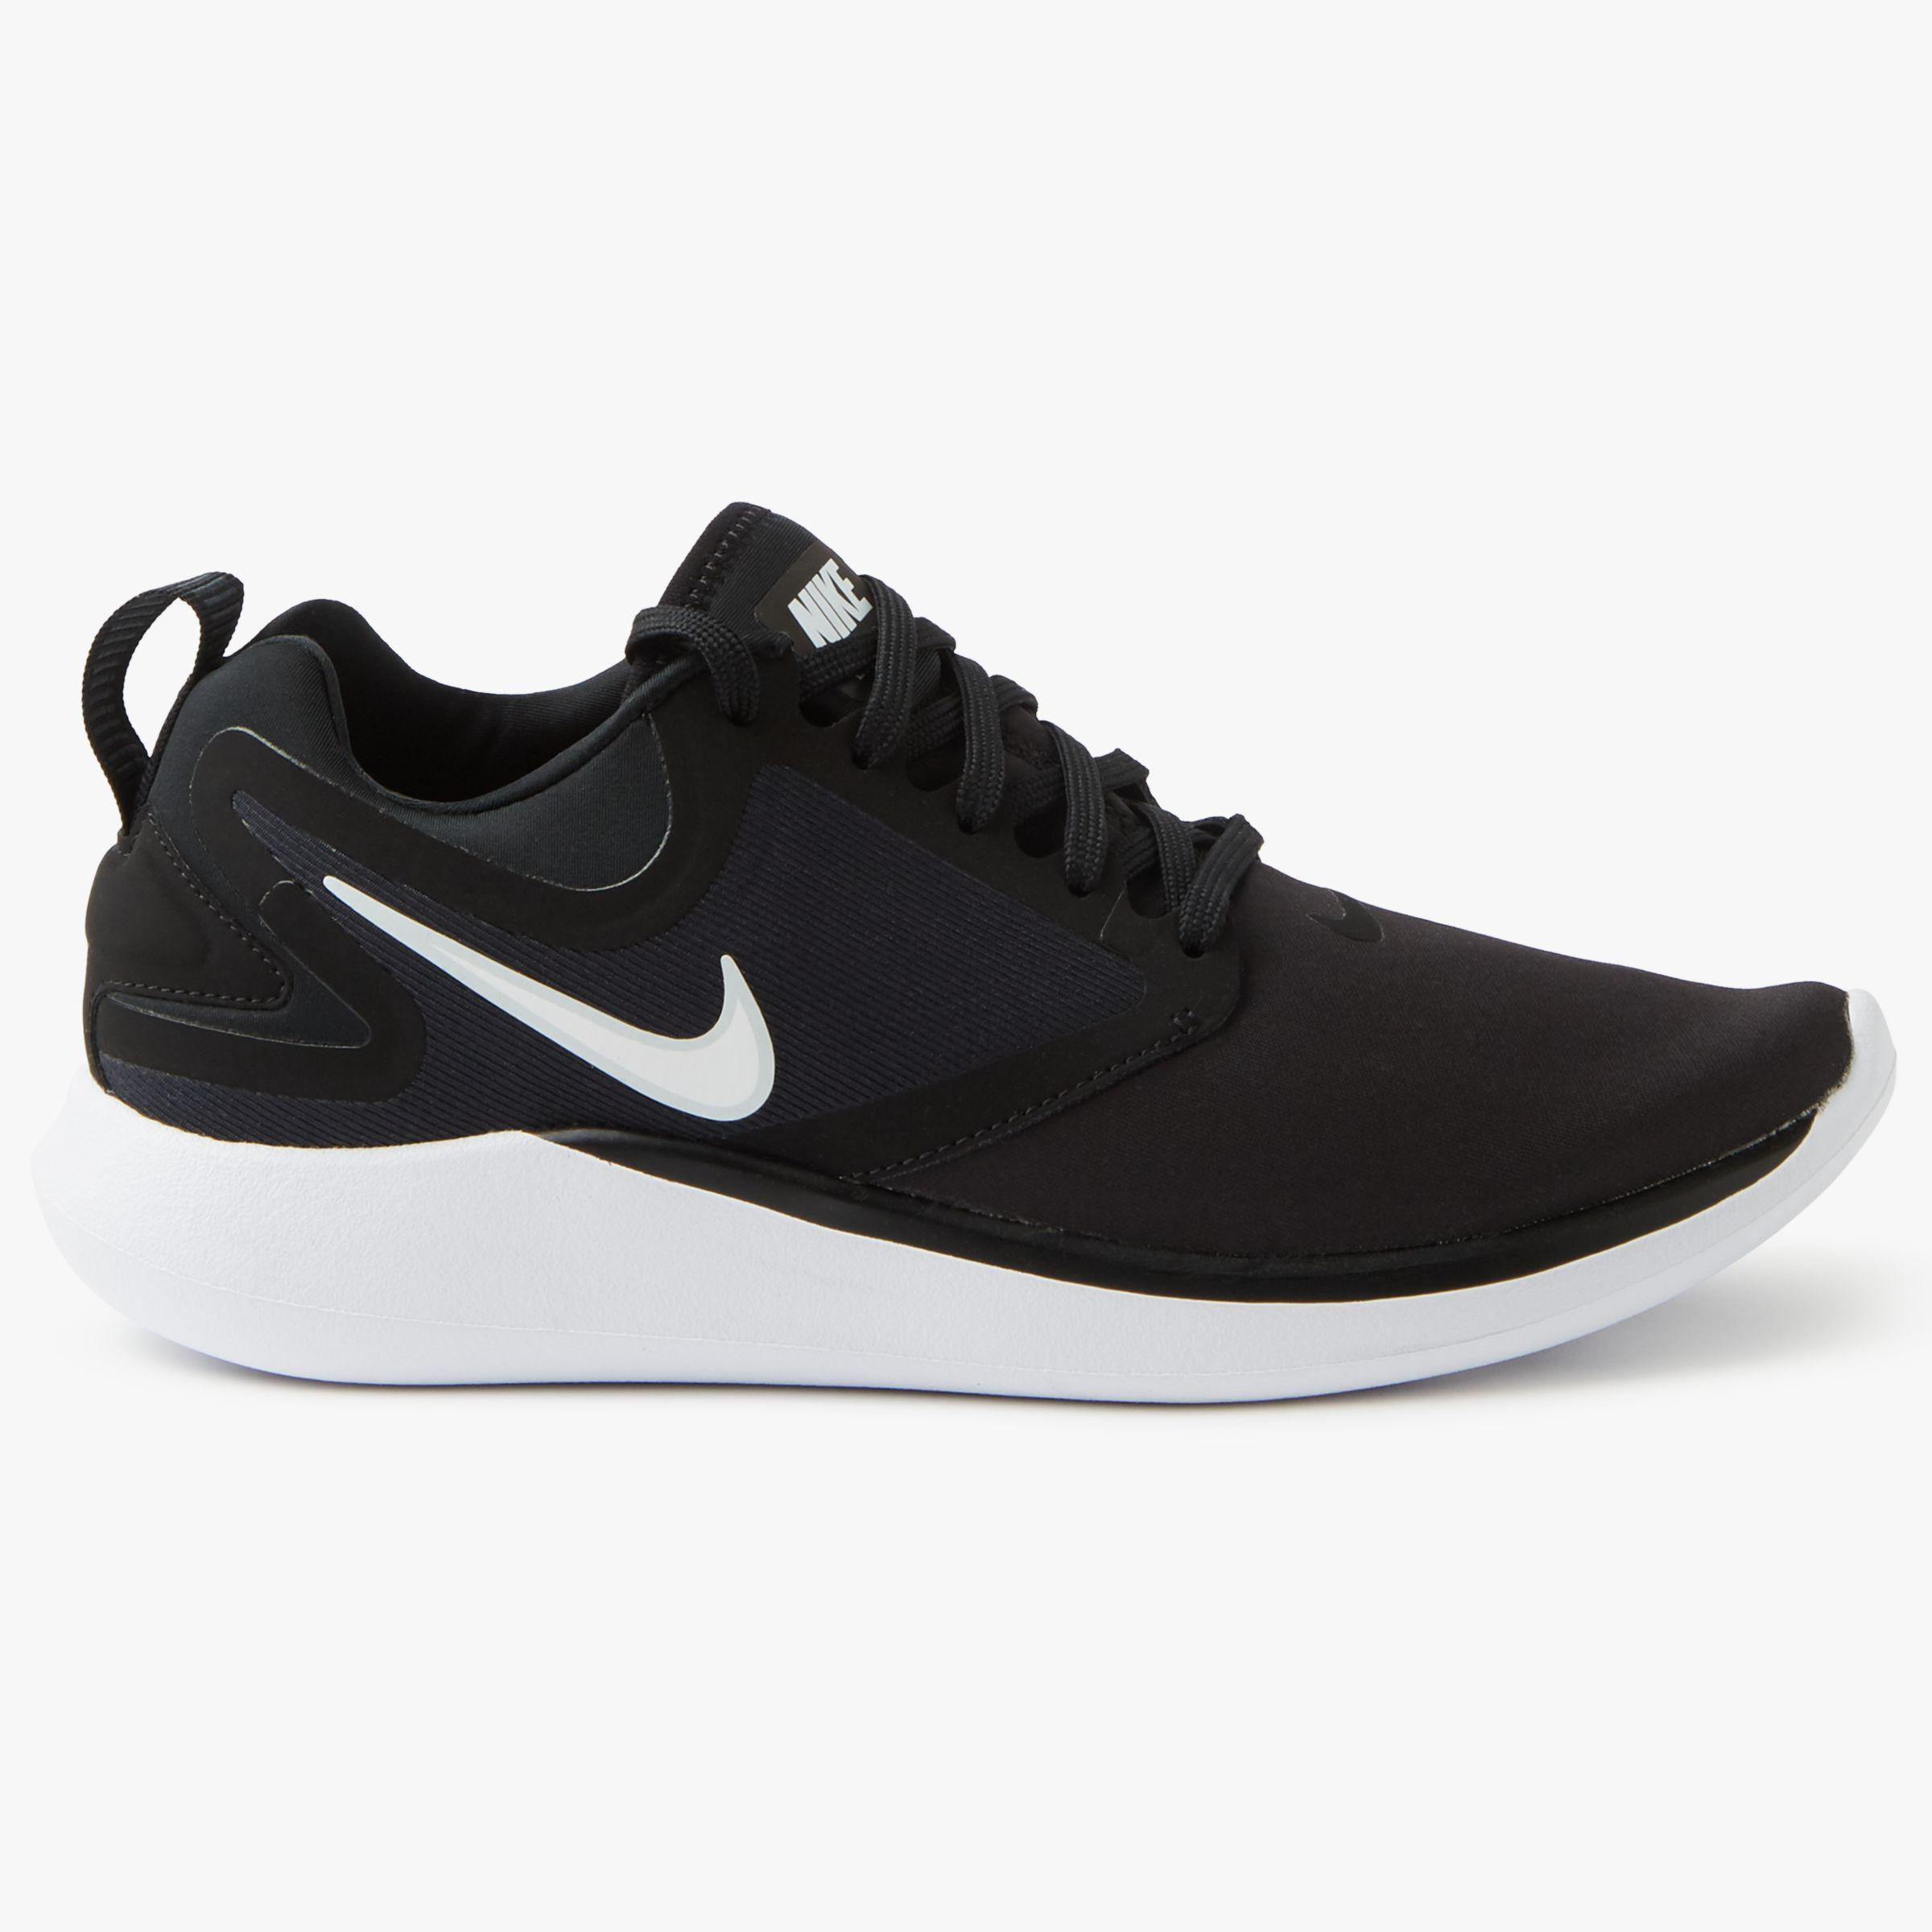 4a44ebebcb1 Nike Lunarsolo Women s Running Shoes in Black for Men - Lyst